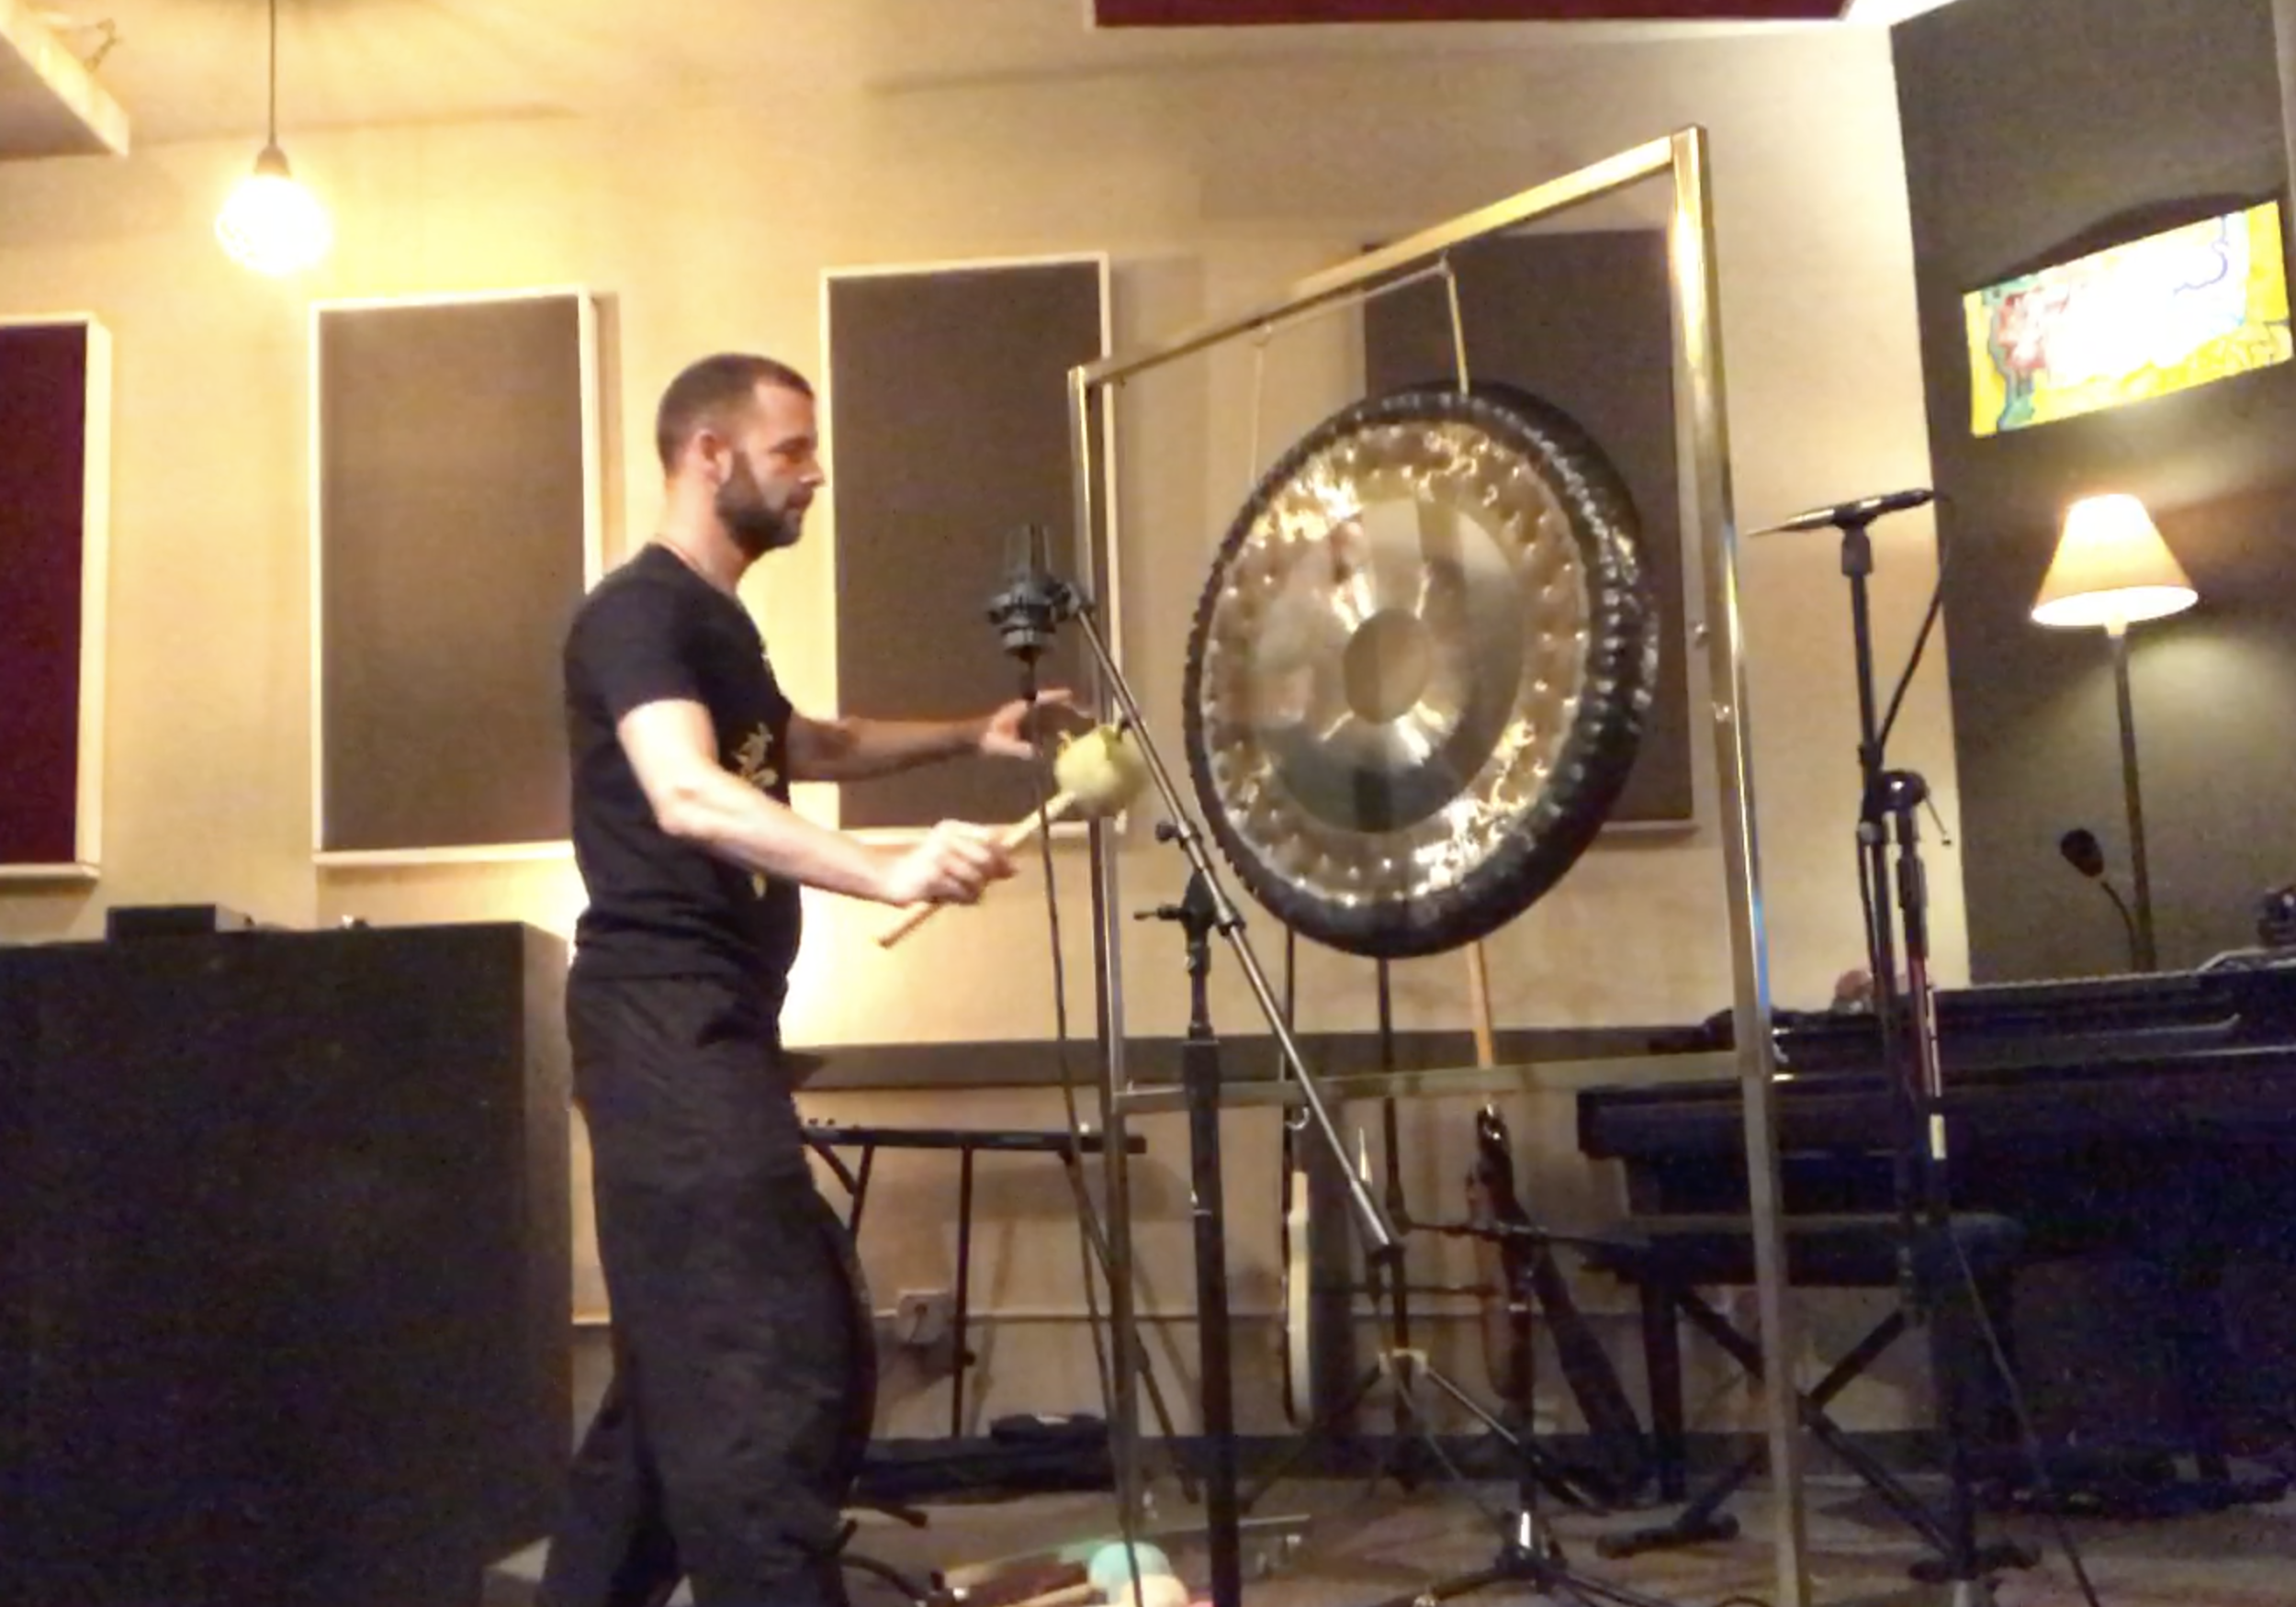 It took hundred of takes and 6 different gongs to get the perfect sound..The gongs hit at the minute mark on each track so you can use it as a timer in your meditation, tai chi, yoga and qigong.